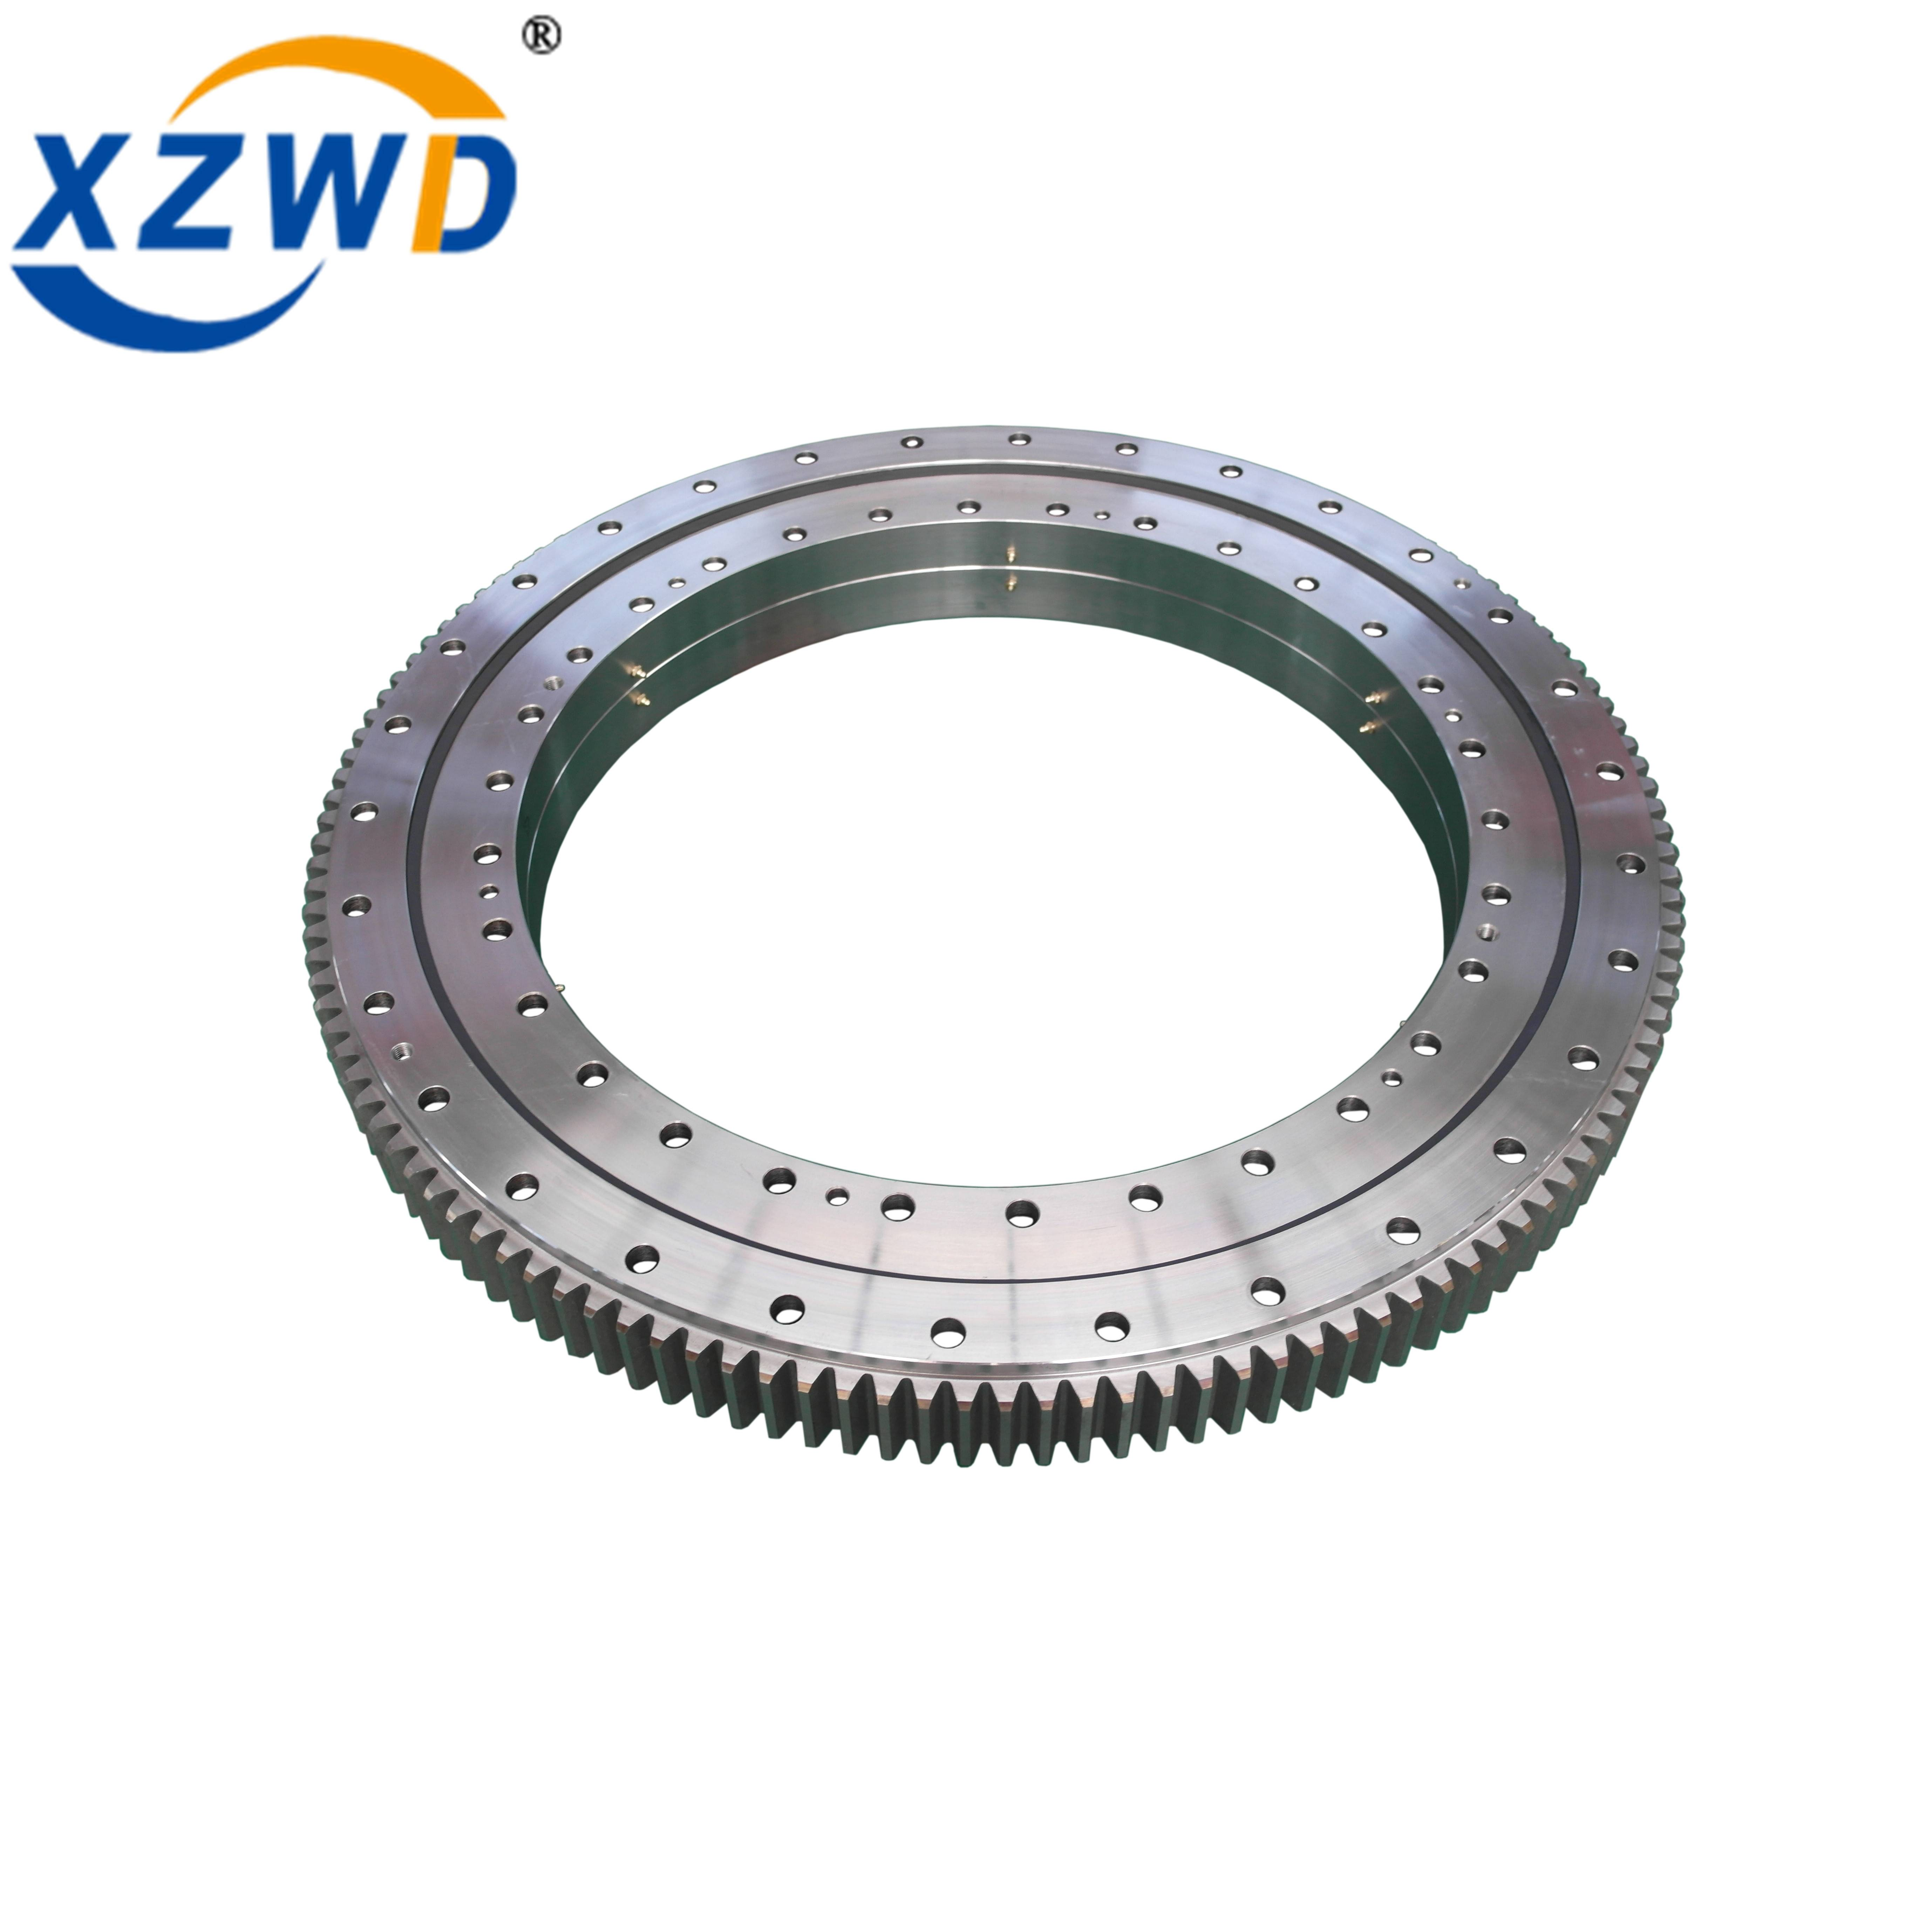 Wanda Double Row Ball Slewing Ring Bearing External Toothed Swing Bearing Geared Turntable Bearing Featured Image